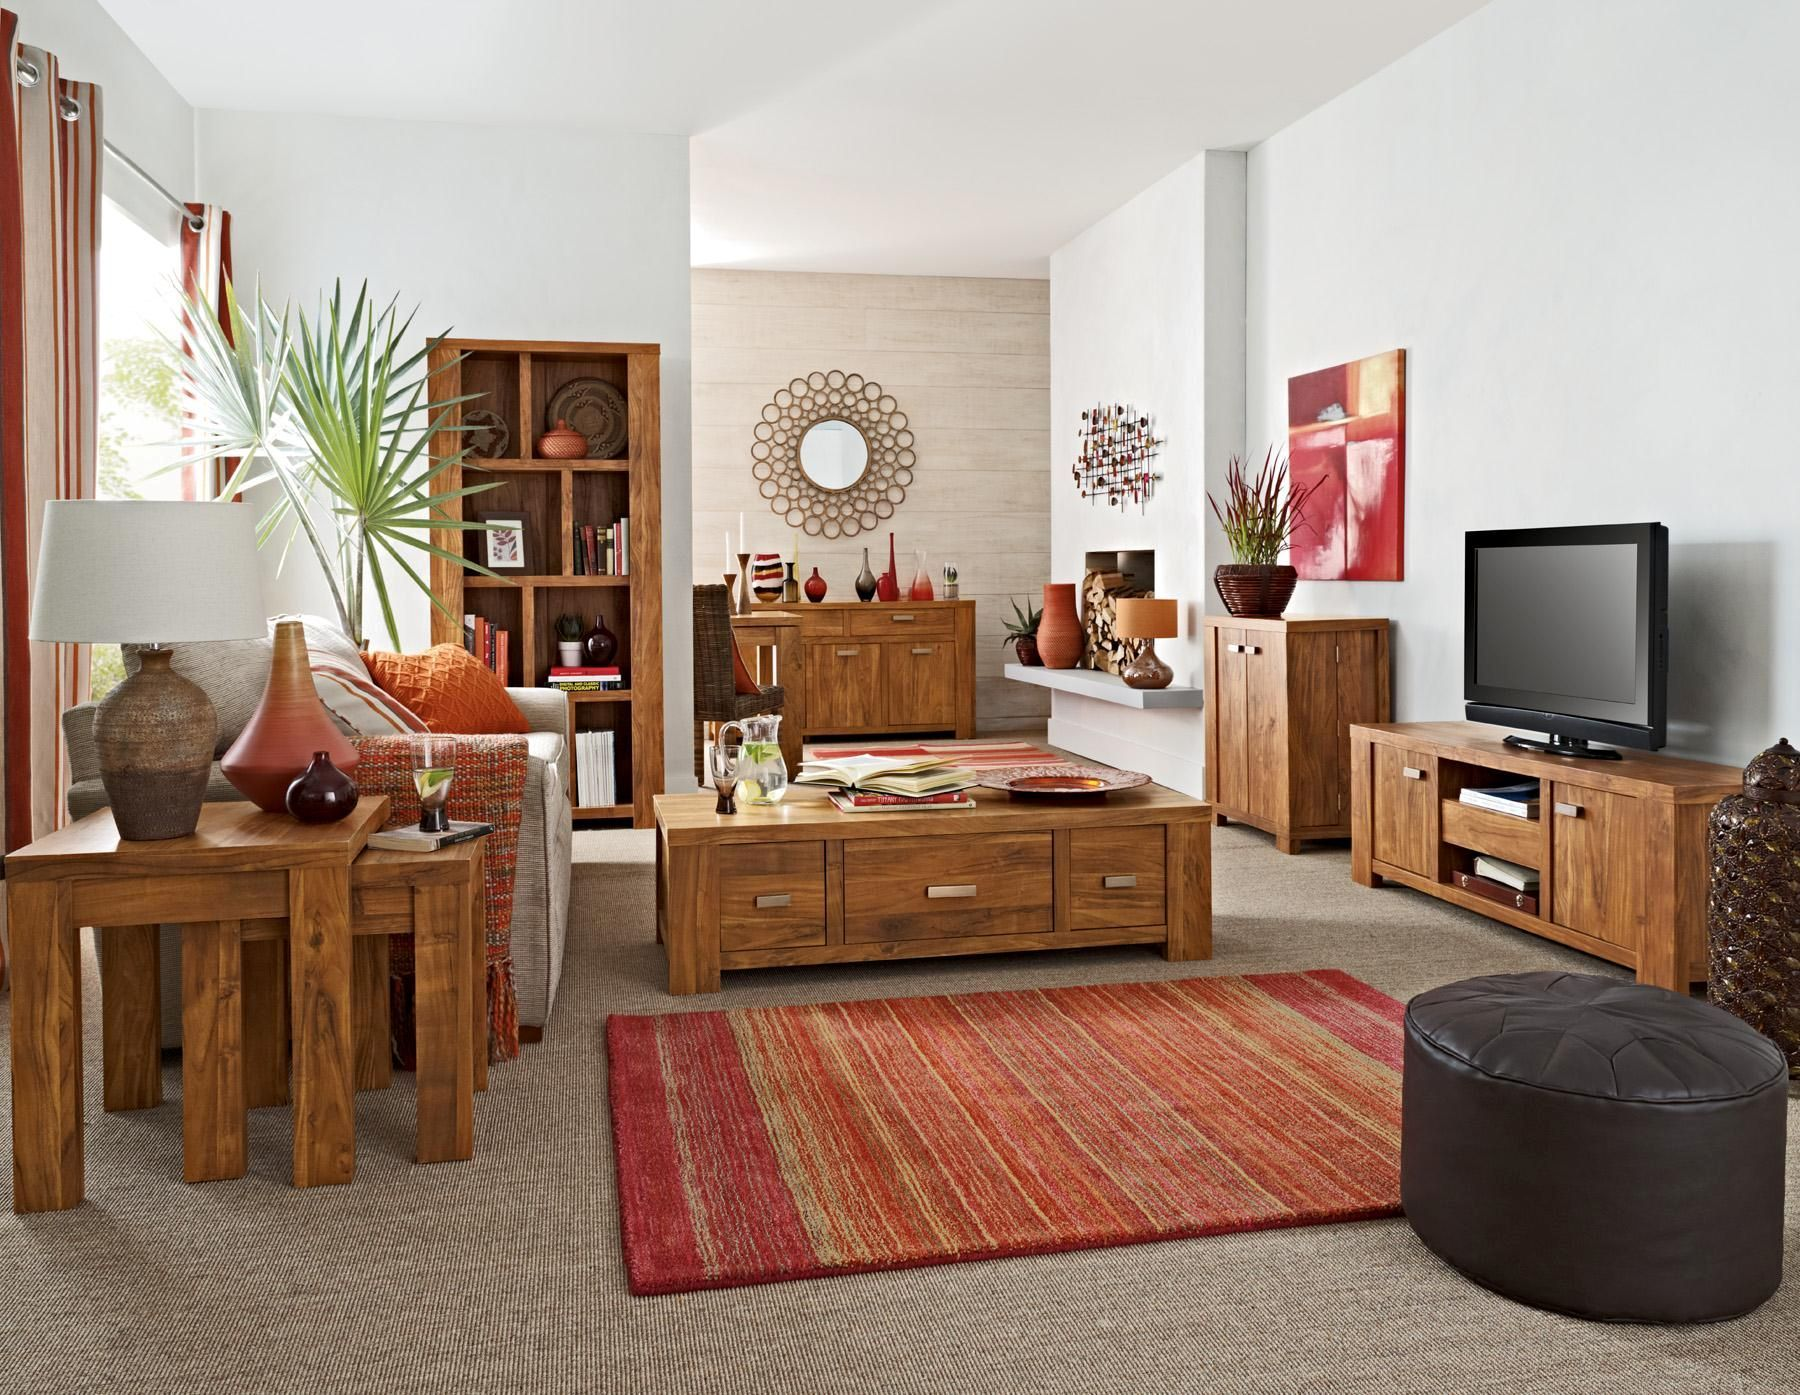 Wohnzimmer Barschrank Living Room Colour Scheme Terracotta Living